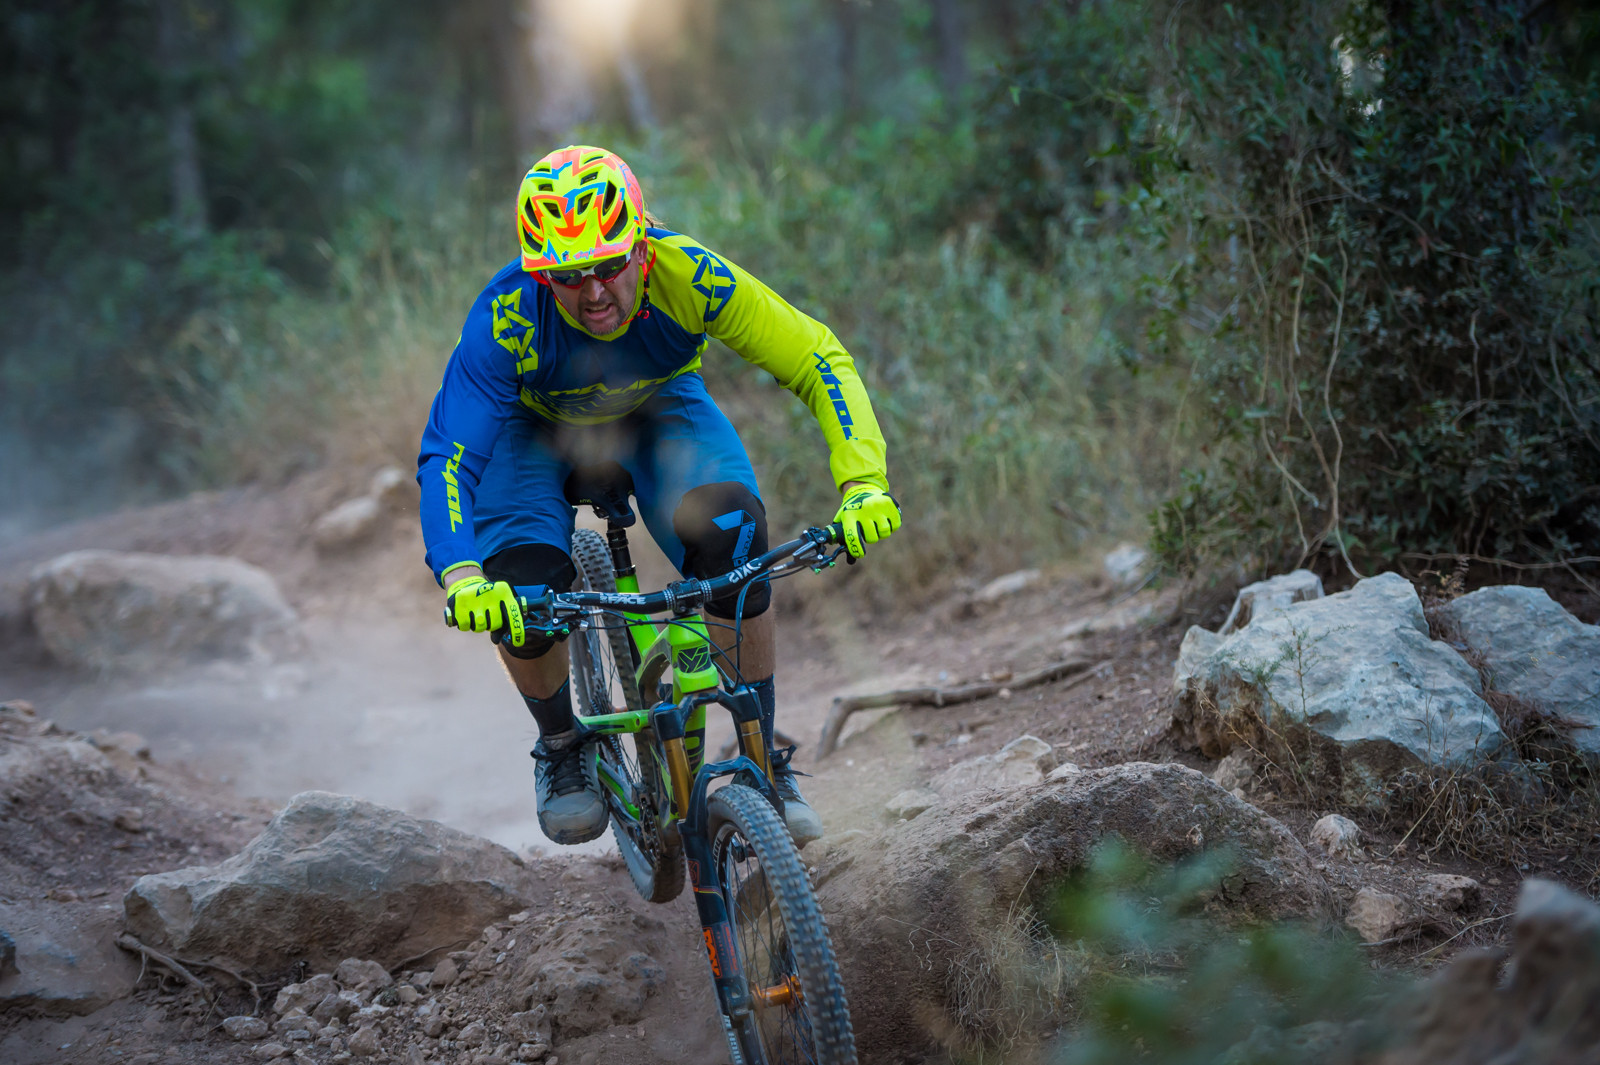 Vital Mtb How To Cockpit Set Up Mountain Bikes Feature Stories Bike Anatomy Diagram On Dirt Jump In The Neutral Position Angles Of Bar Will Help Align Grips With Your Hands When You Are Proper Riding